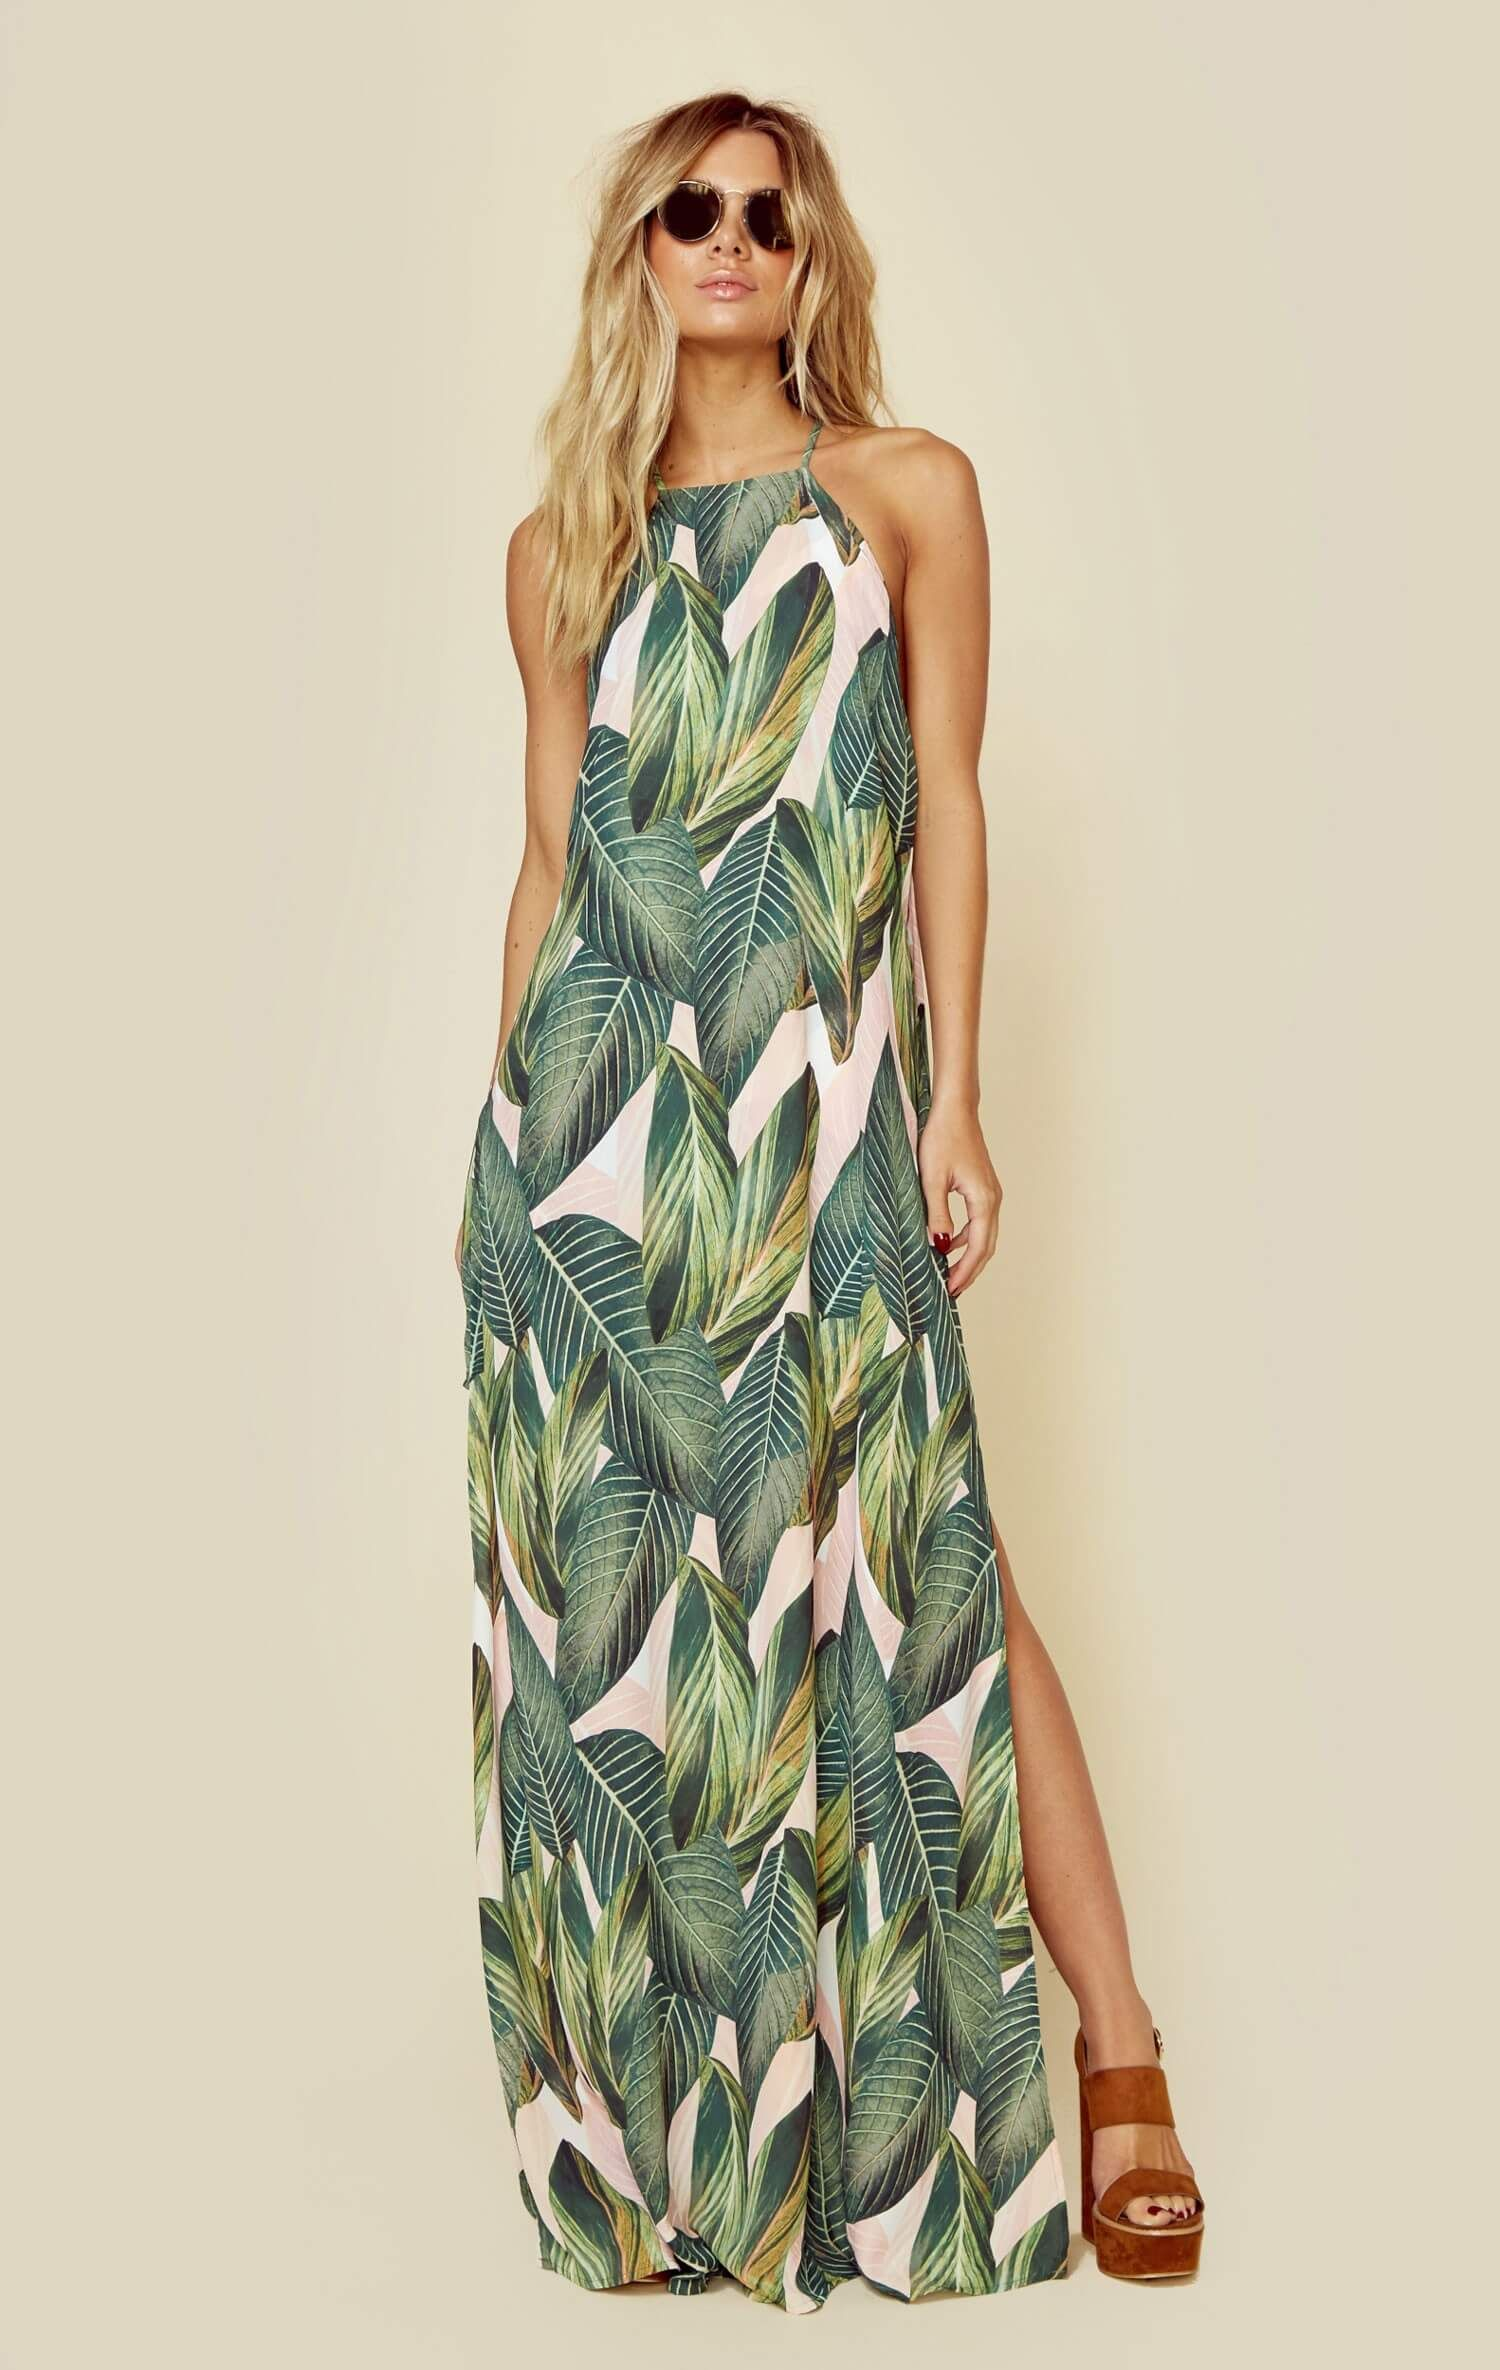 4c63c5d1ddd6 Channel your bohemian beauty in Show Me Your Mumu's Bronte Maxi Dress.  Featuring a palm